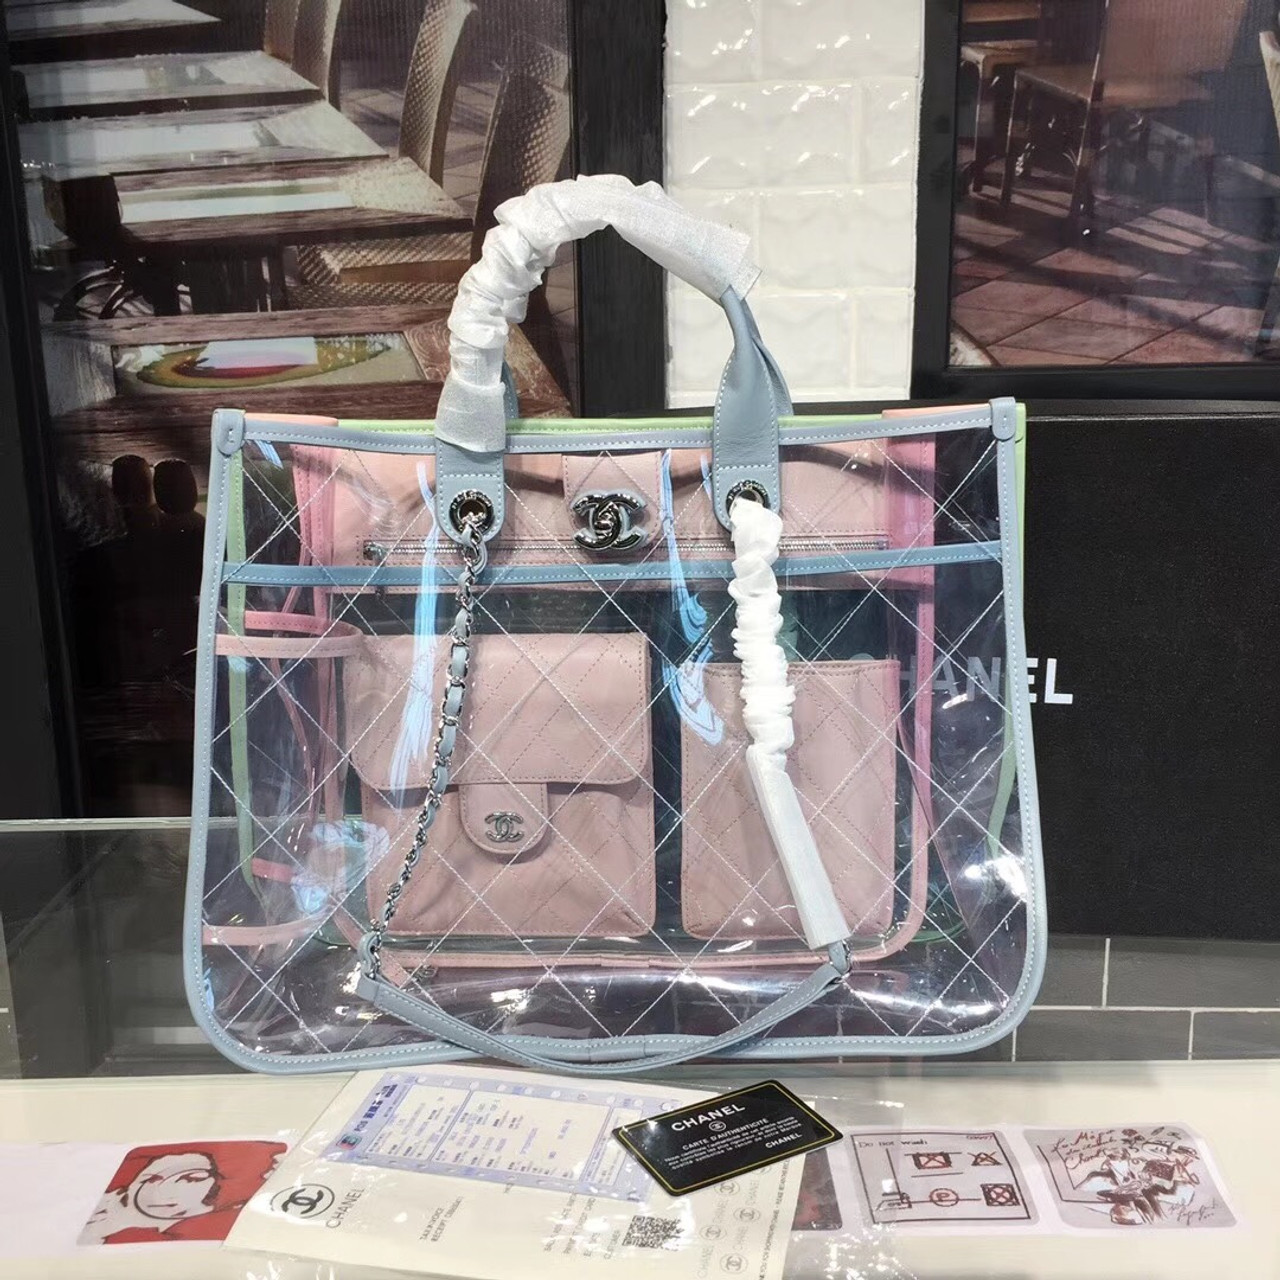 988721a37bc1 PVC Coco Splash Large Shopping 40cm Bag Silver Hardware Lambskin Leather  Spring Summer Act 1